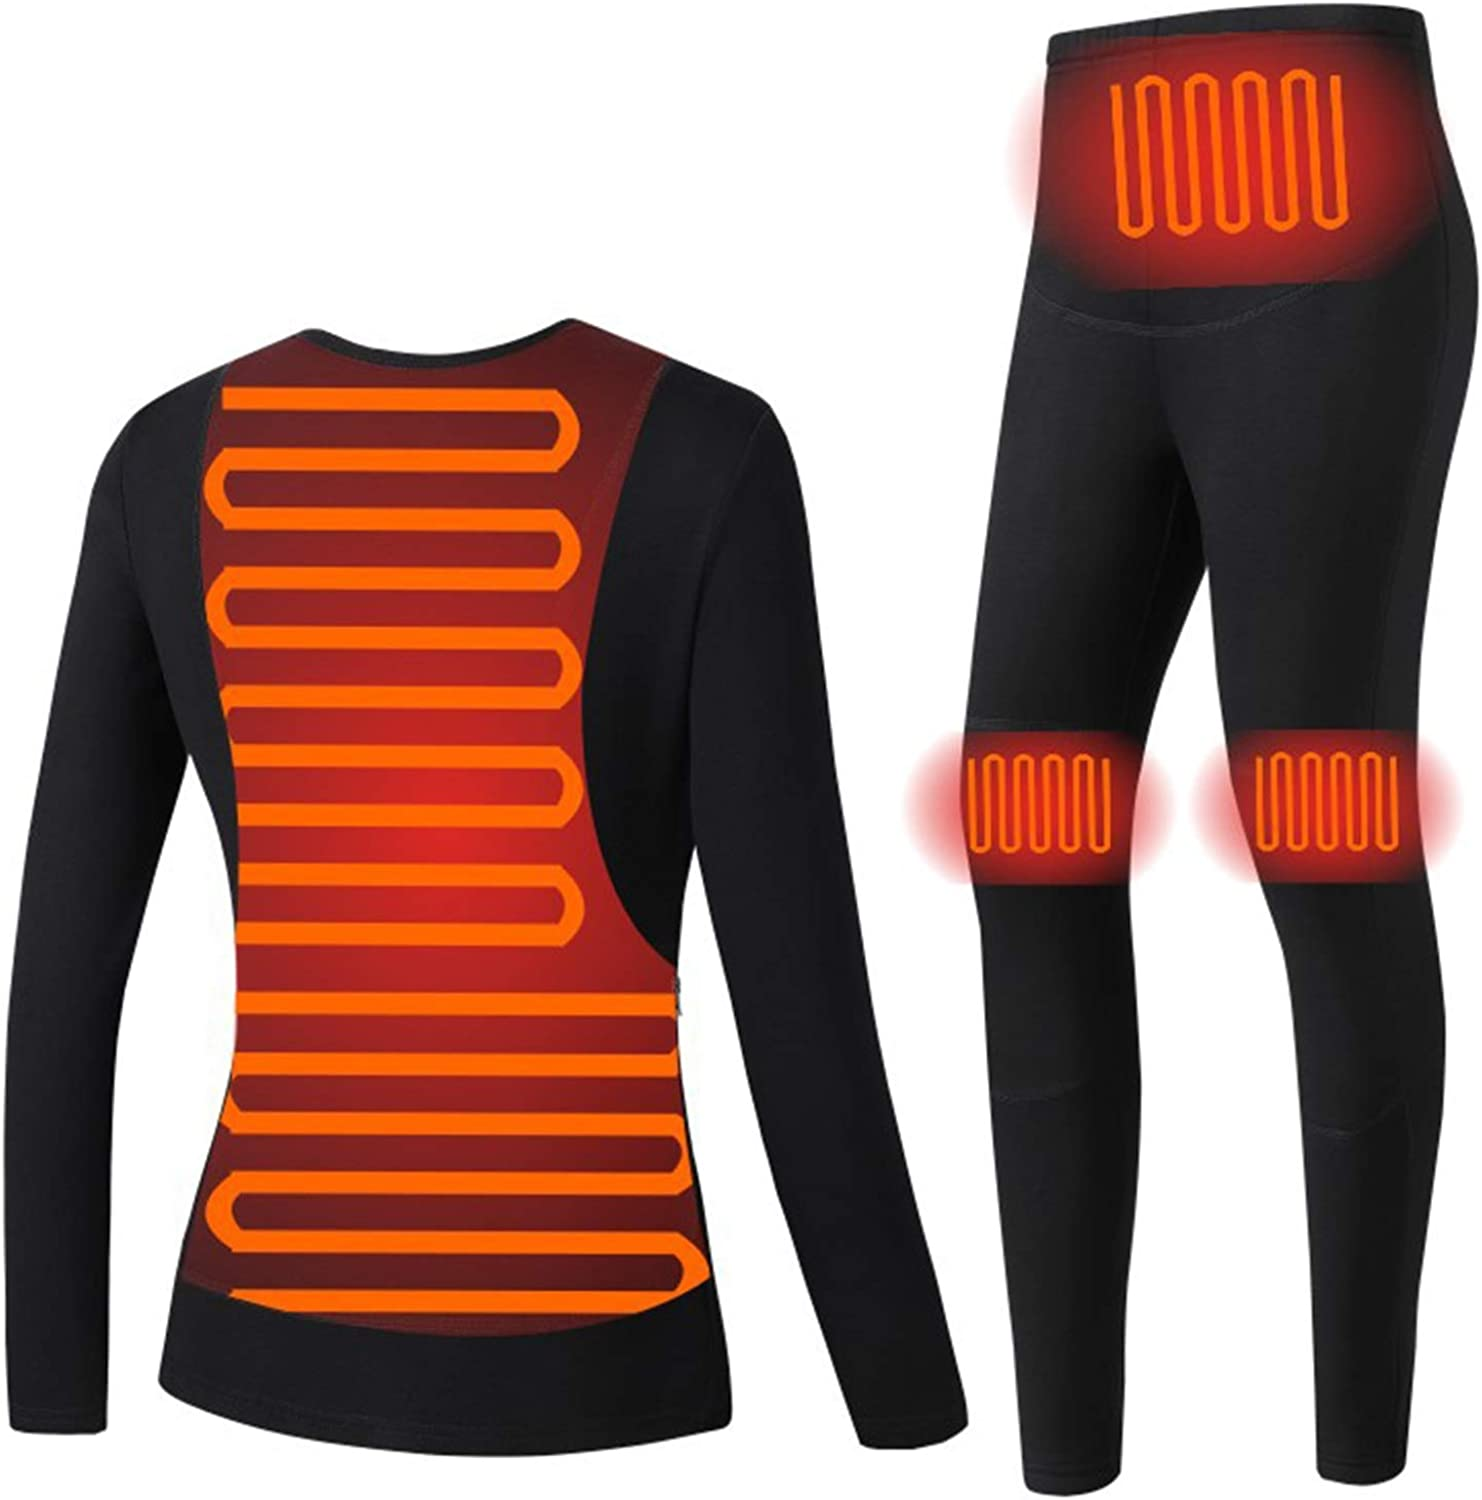 Autumn and Winter Smart Heating Clothing Constant Temperature Suit Usb Heating Solid Color Heating Thermal Underwear